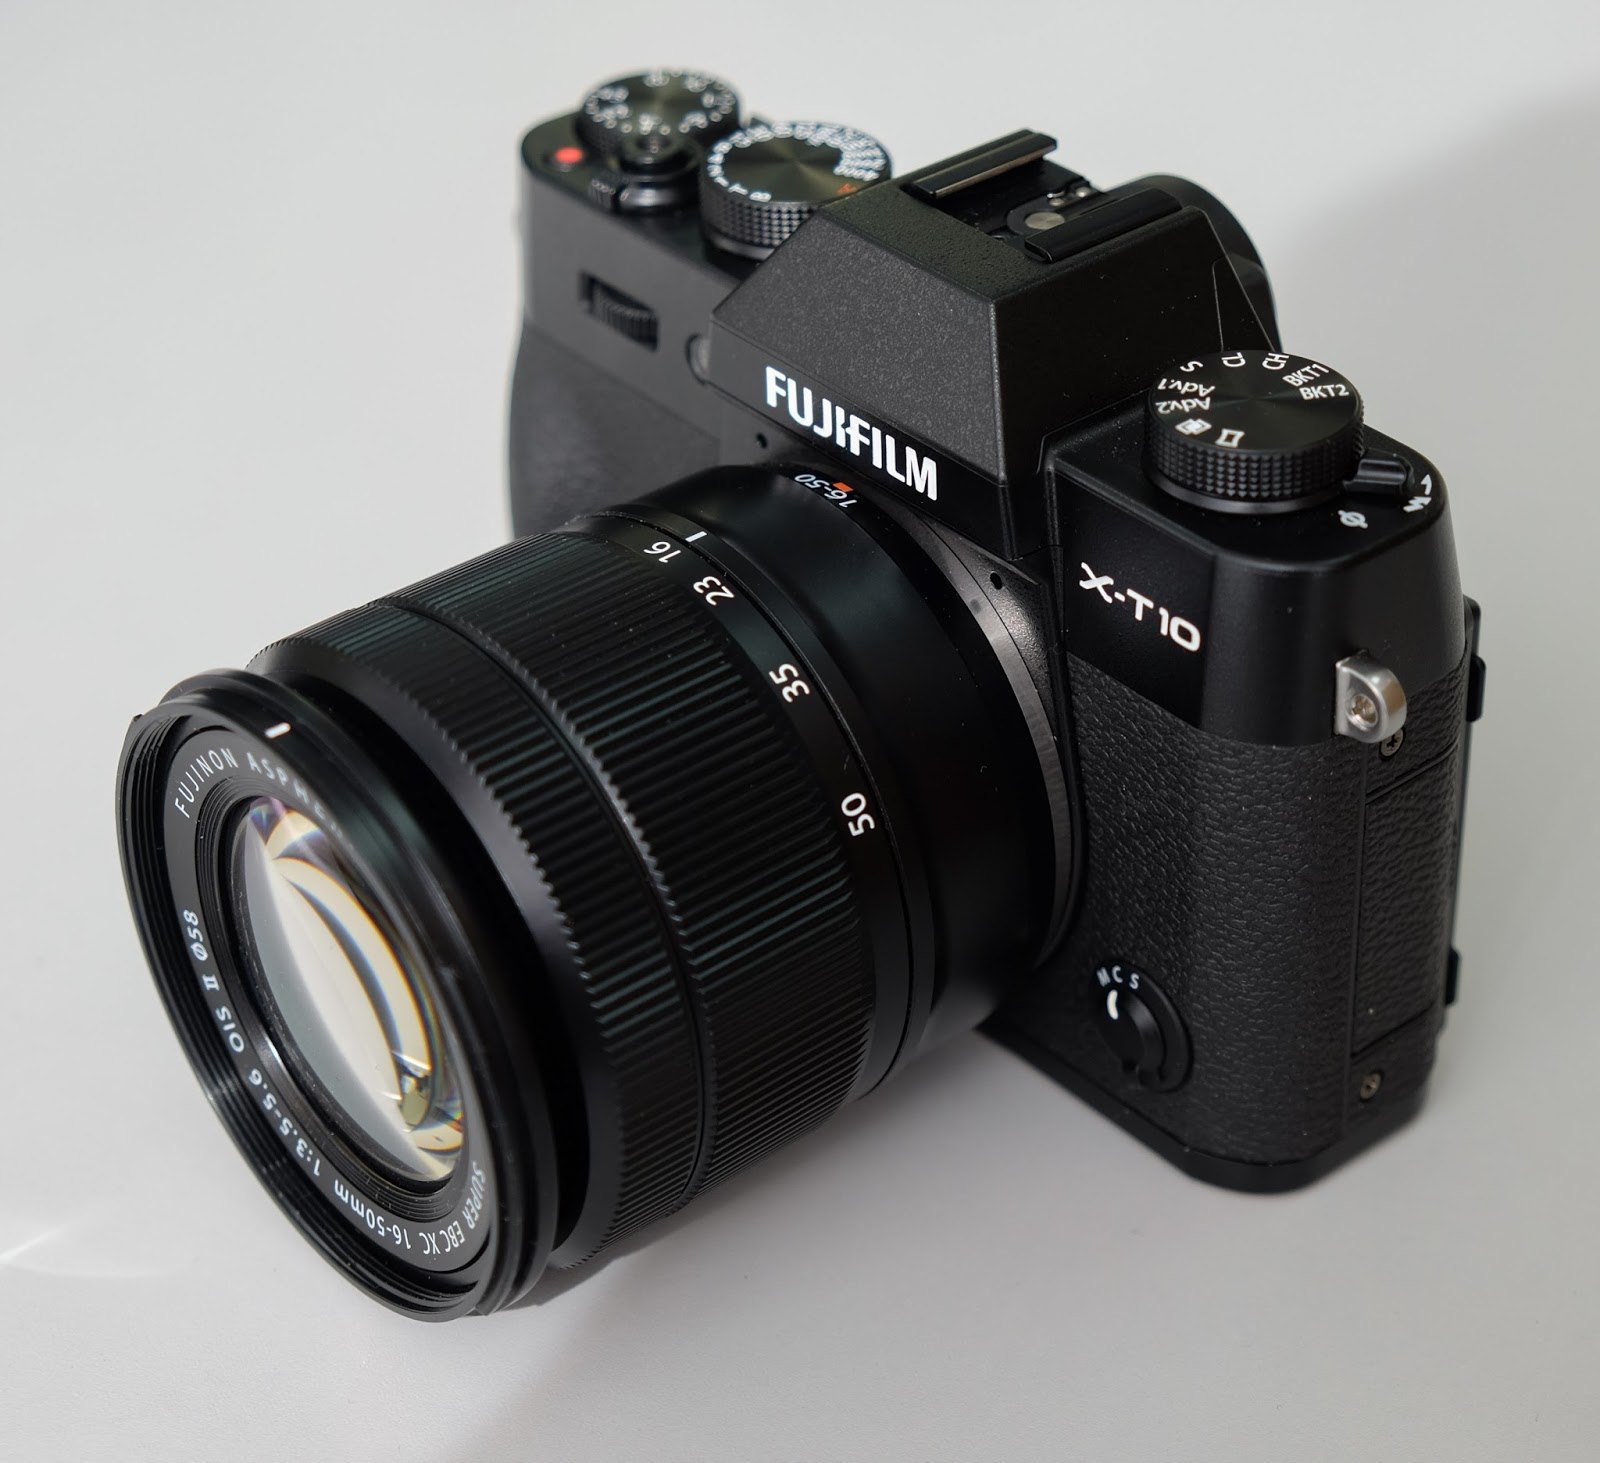 As An X Photographer I Was Offered A Pre Production Copy Of The New Camera Week Ago By Guys Fujifilm Middle East In Dubai